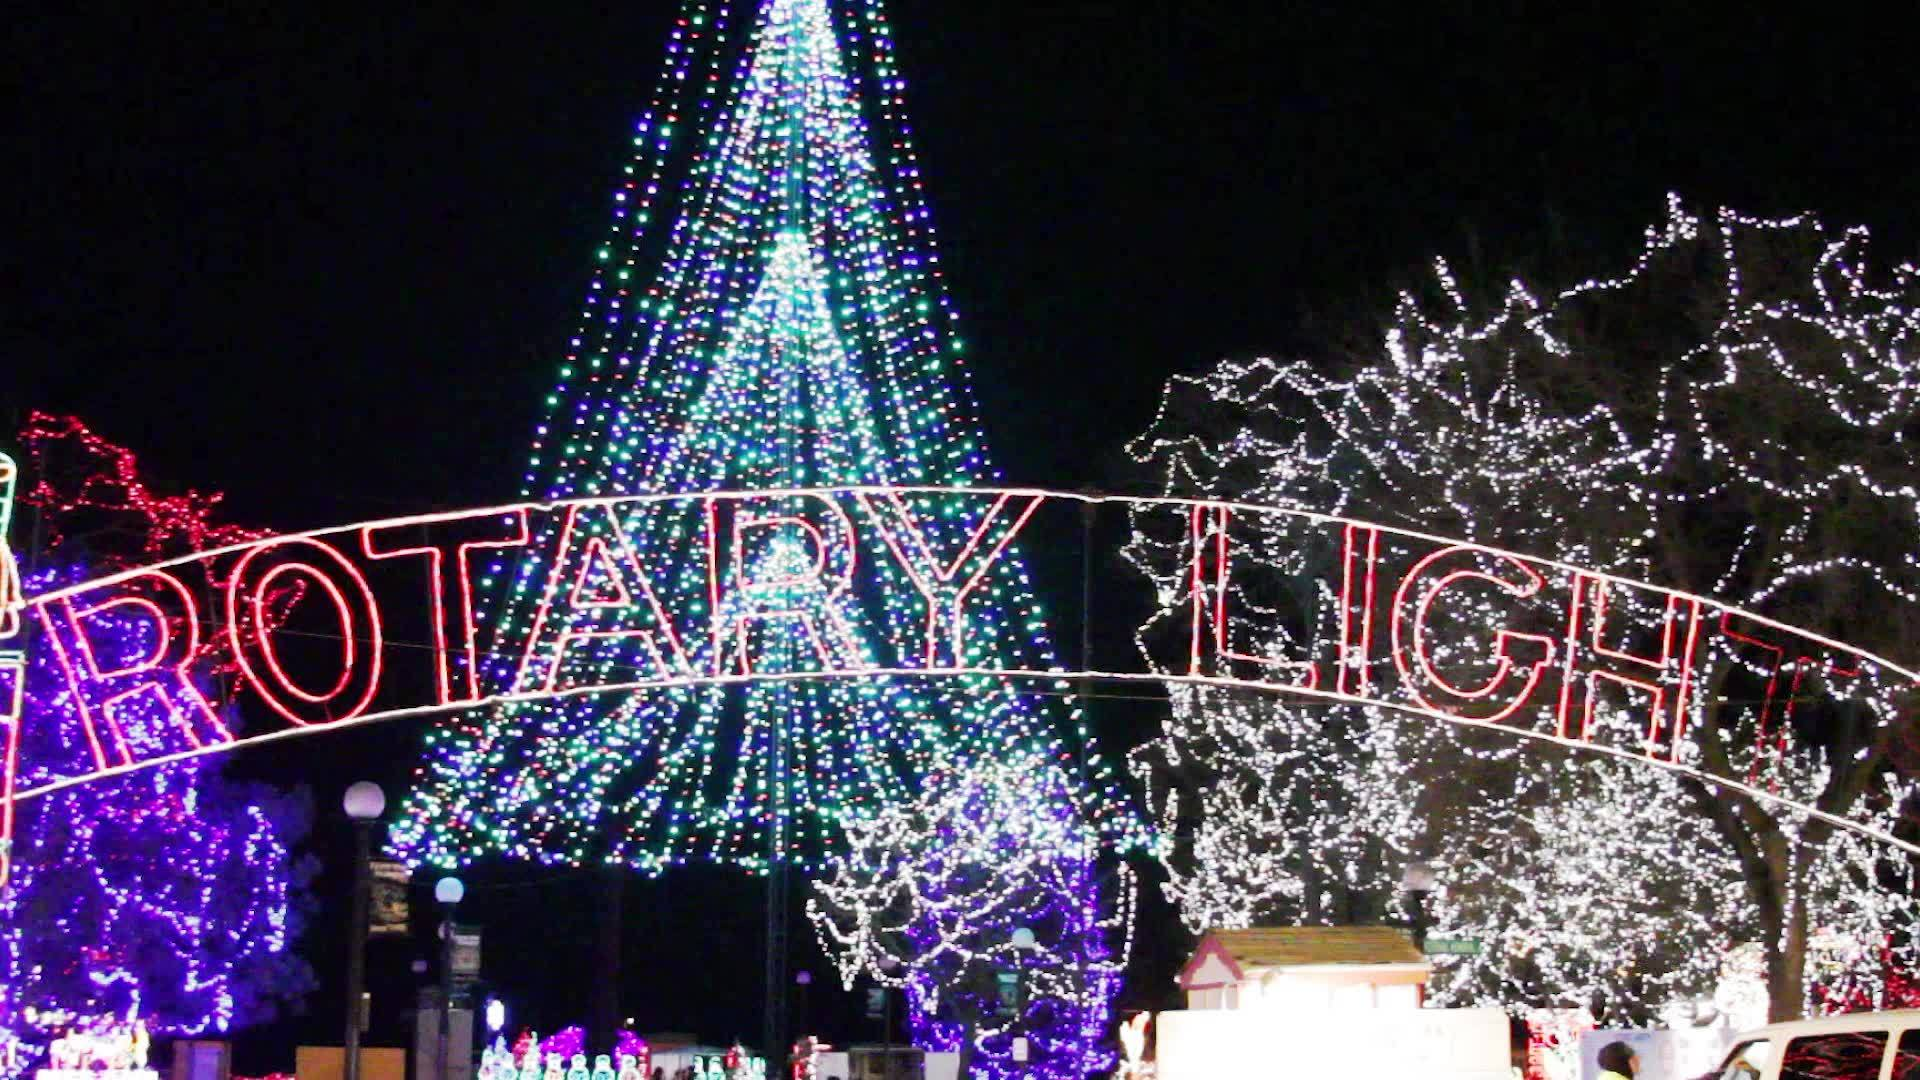 Bright Nights at Rotary Lights